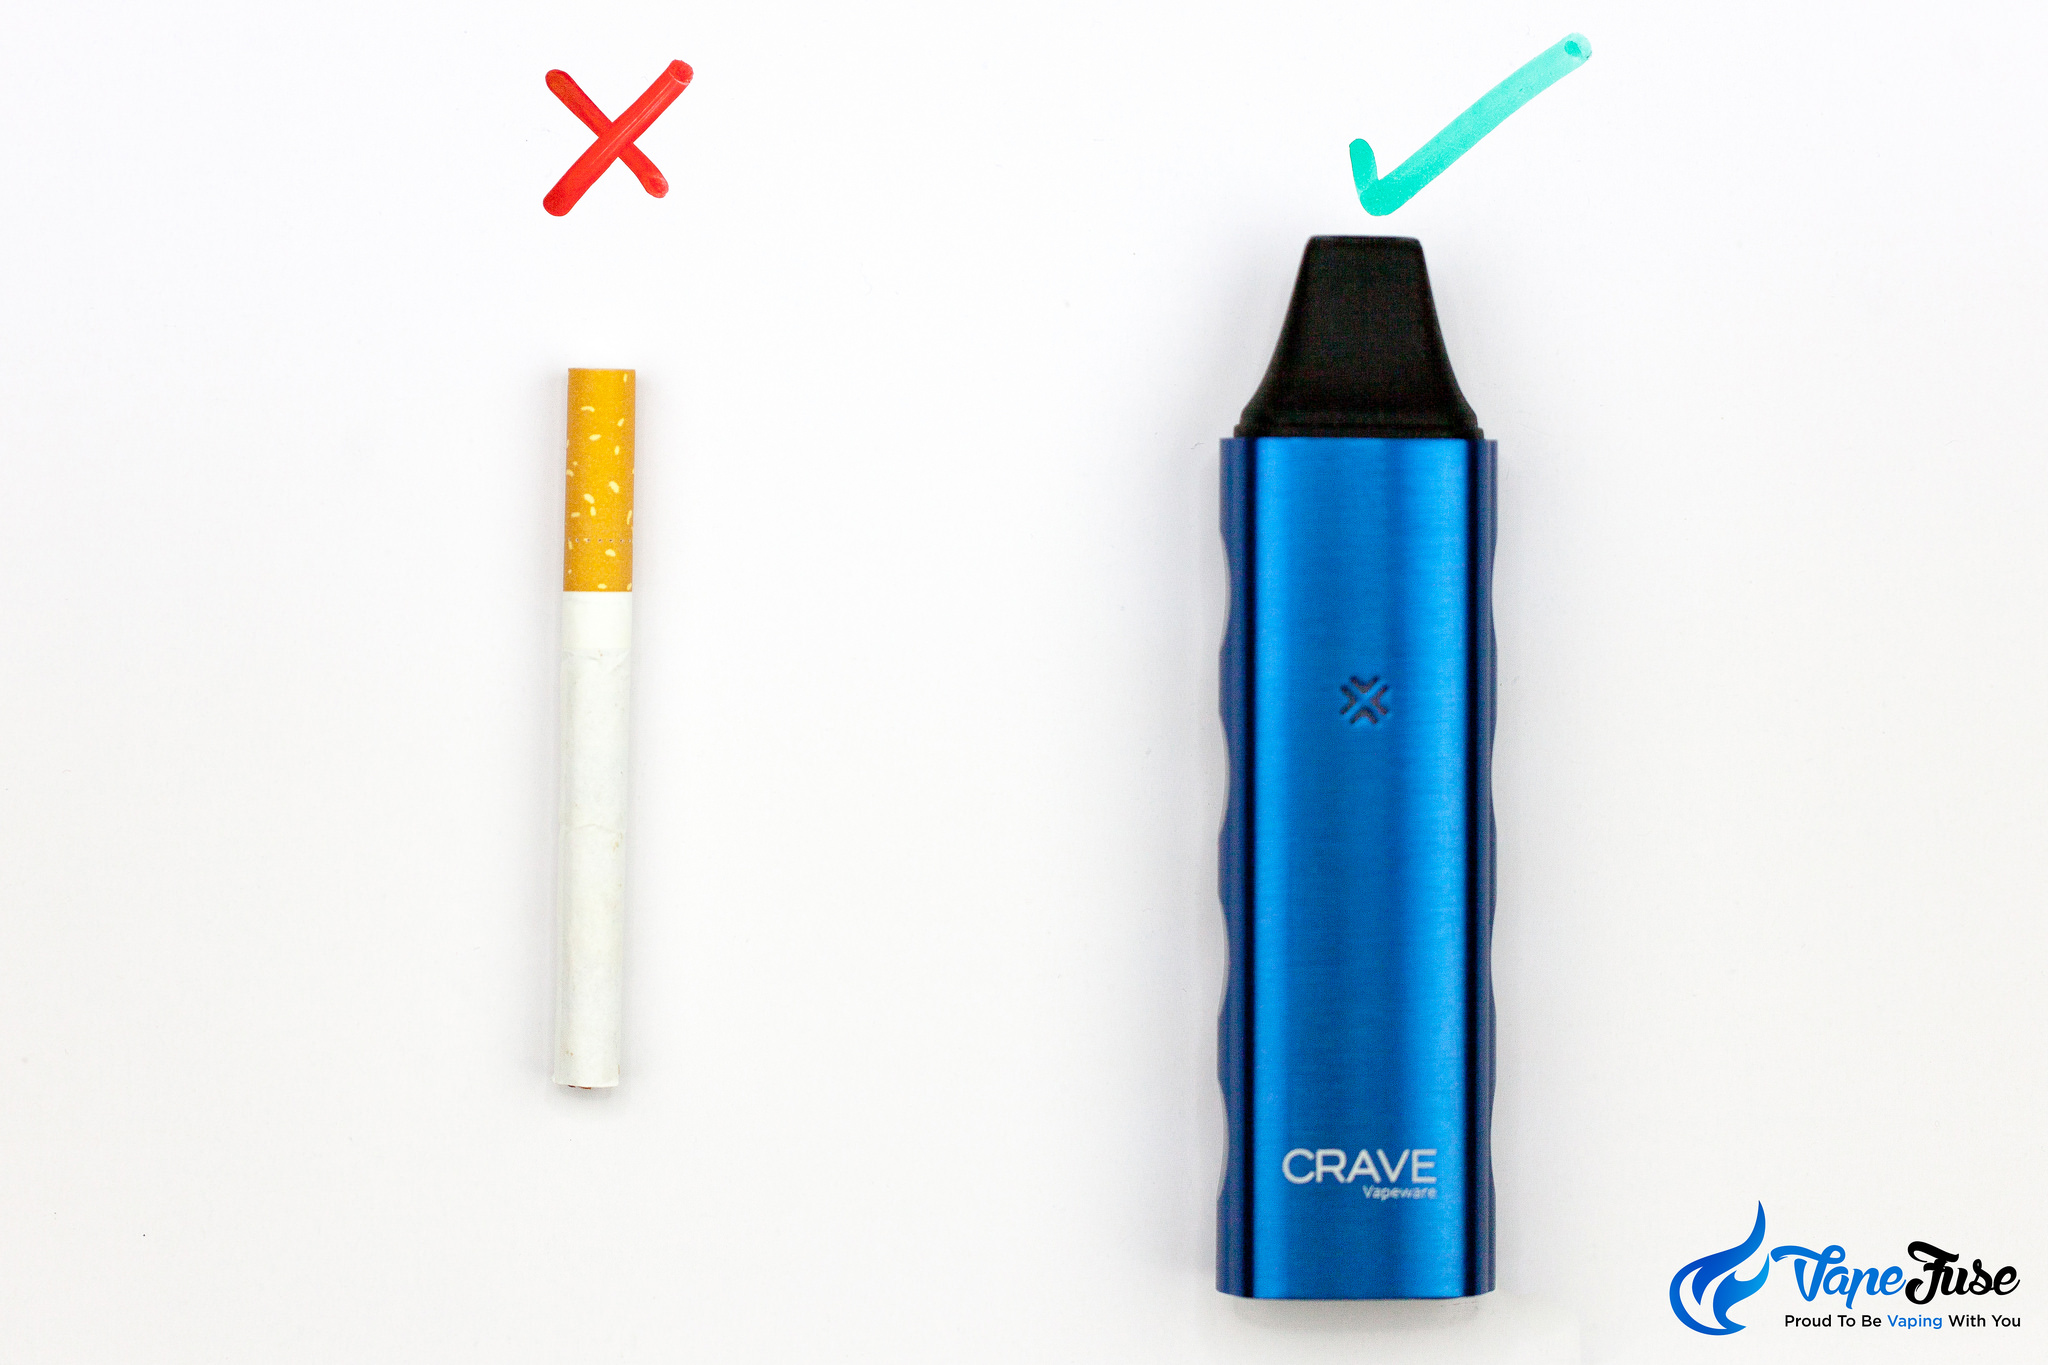 Misconceptions About Vaping: Top 5 Vaporizer Myths